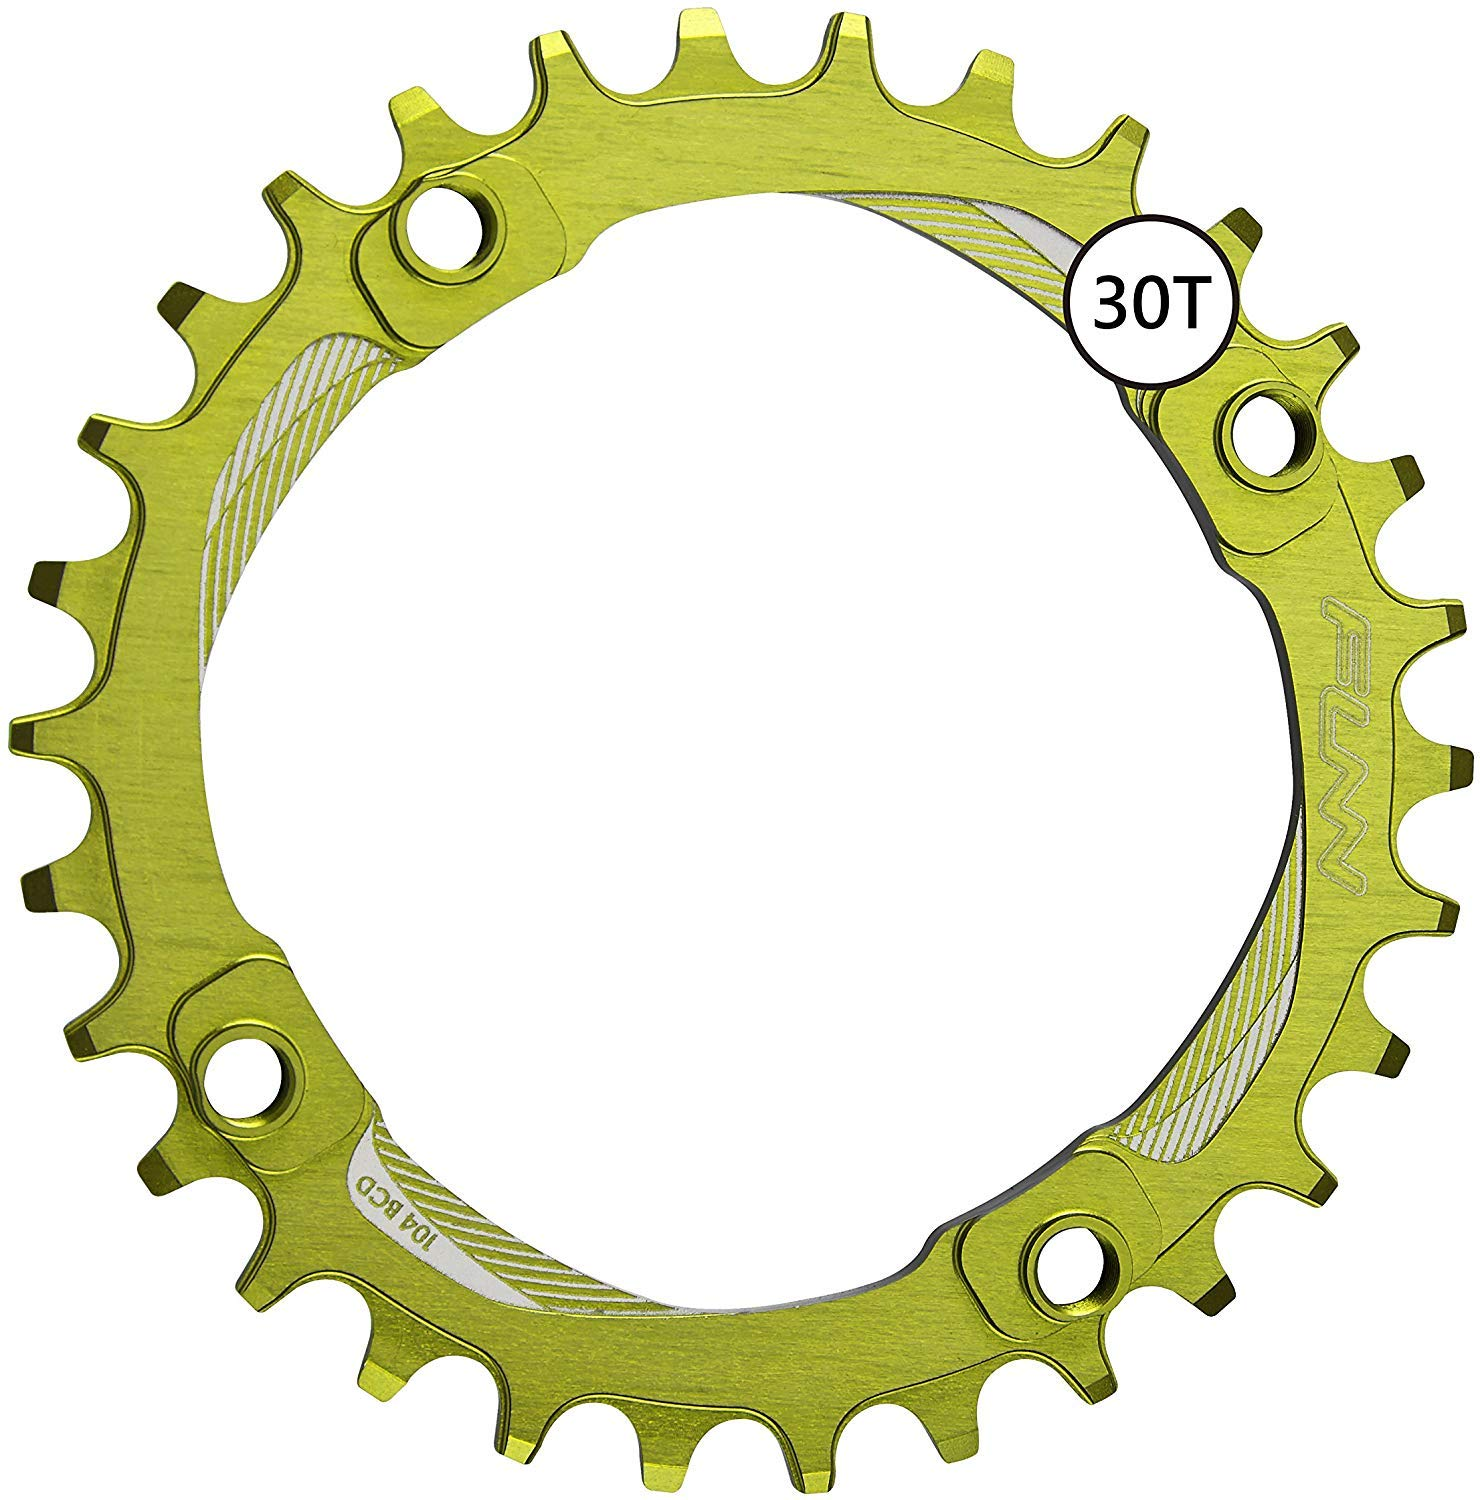 Funn Solo Narrow Wide Chain Ring BCD 104mm (36T Wasabi)